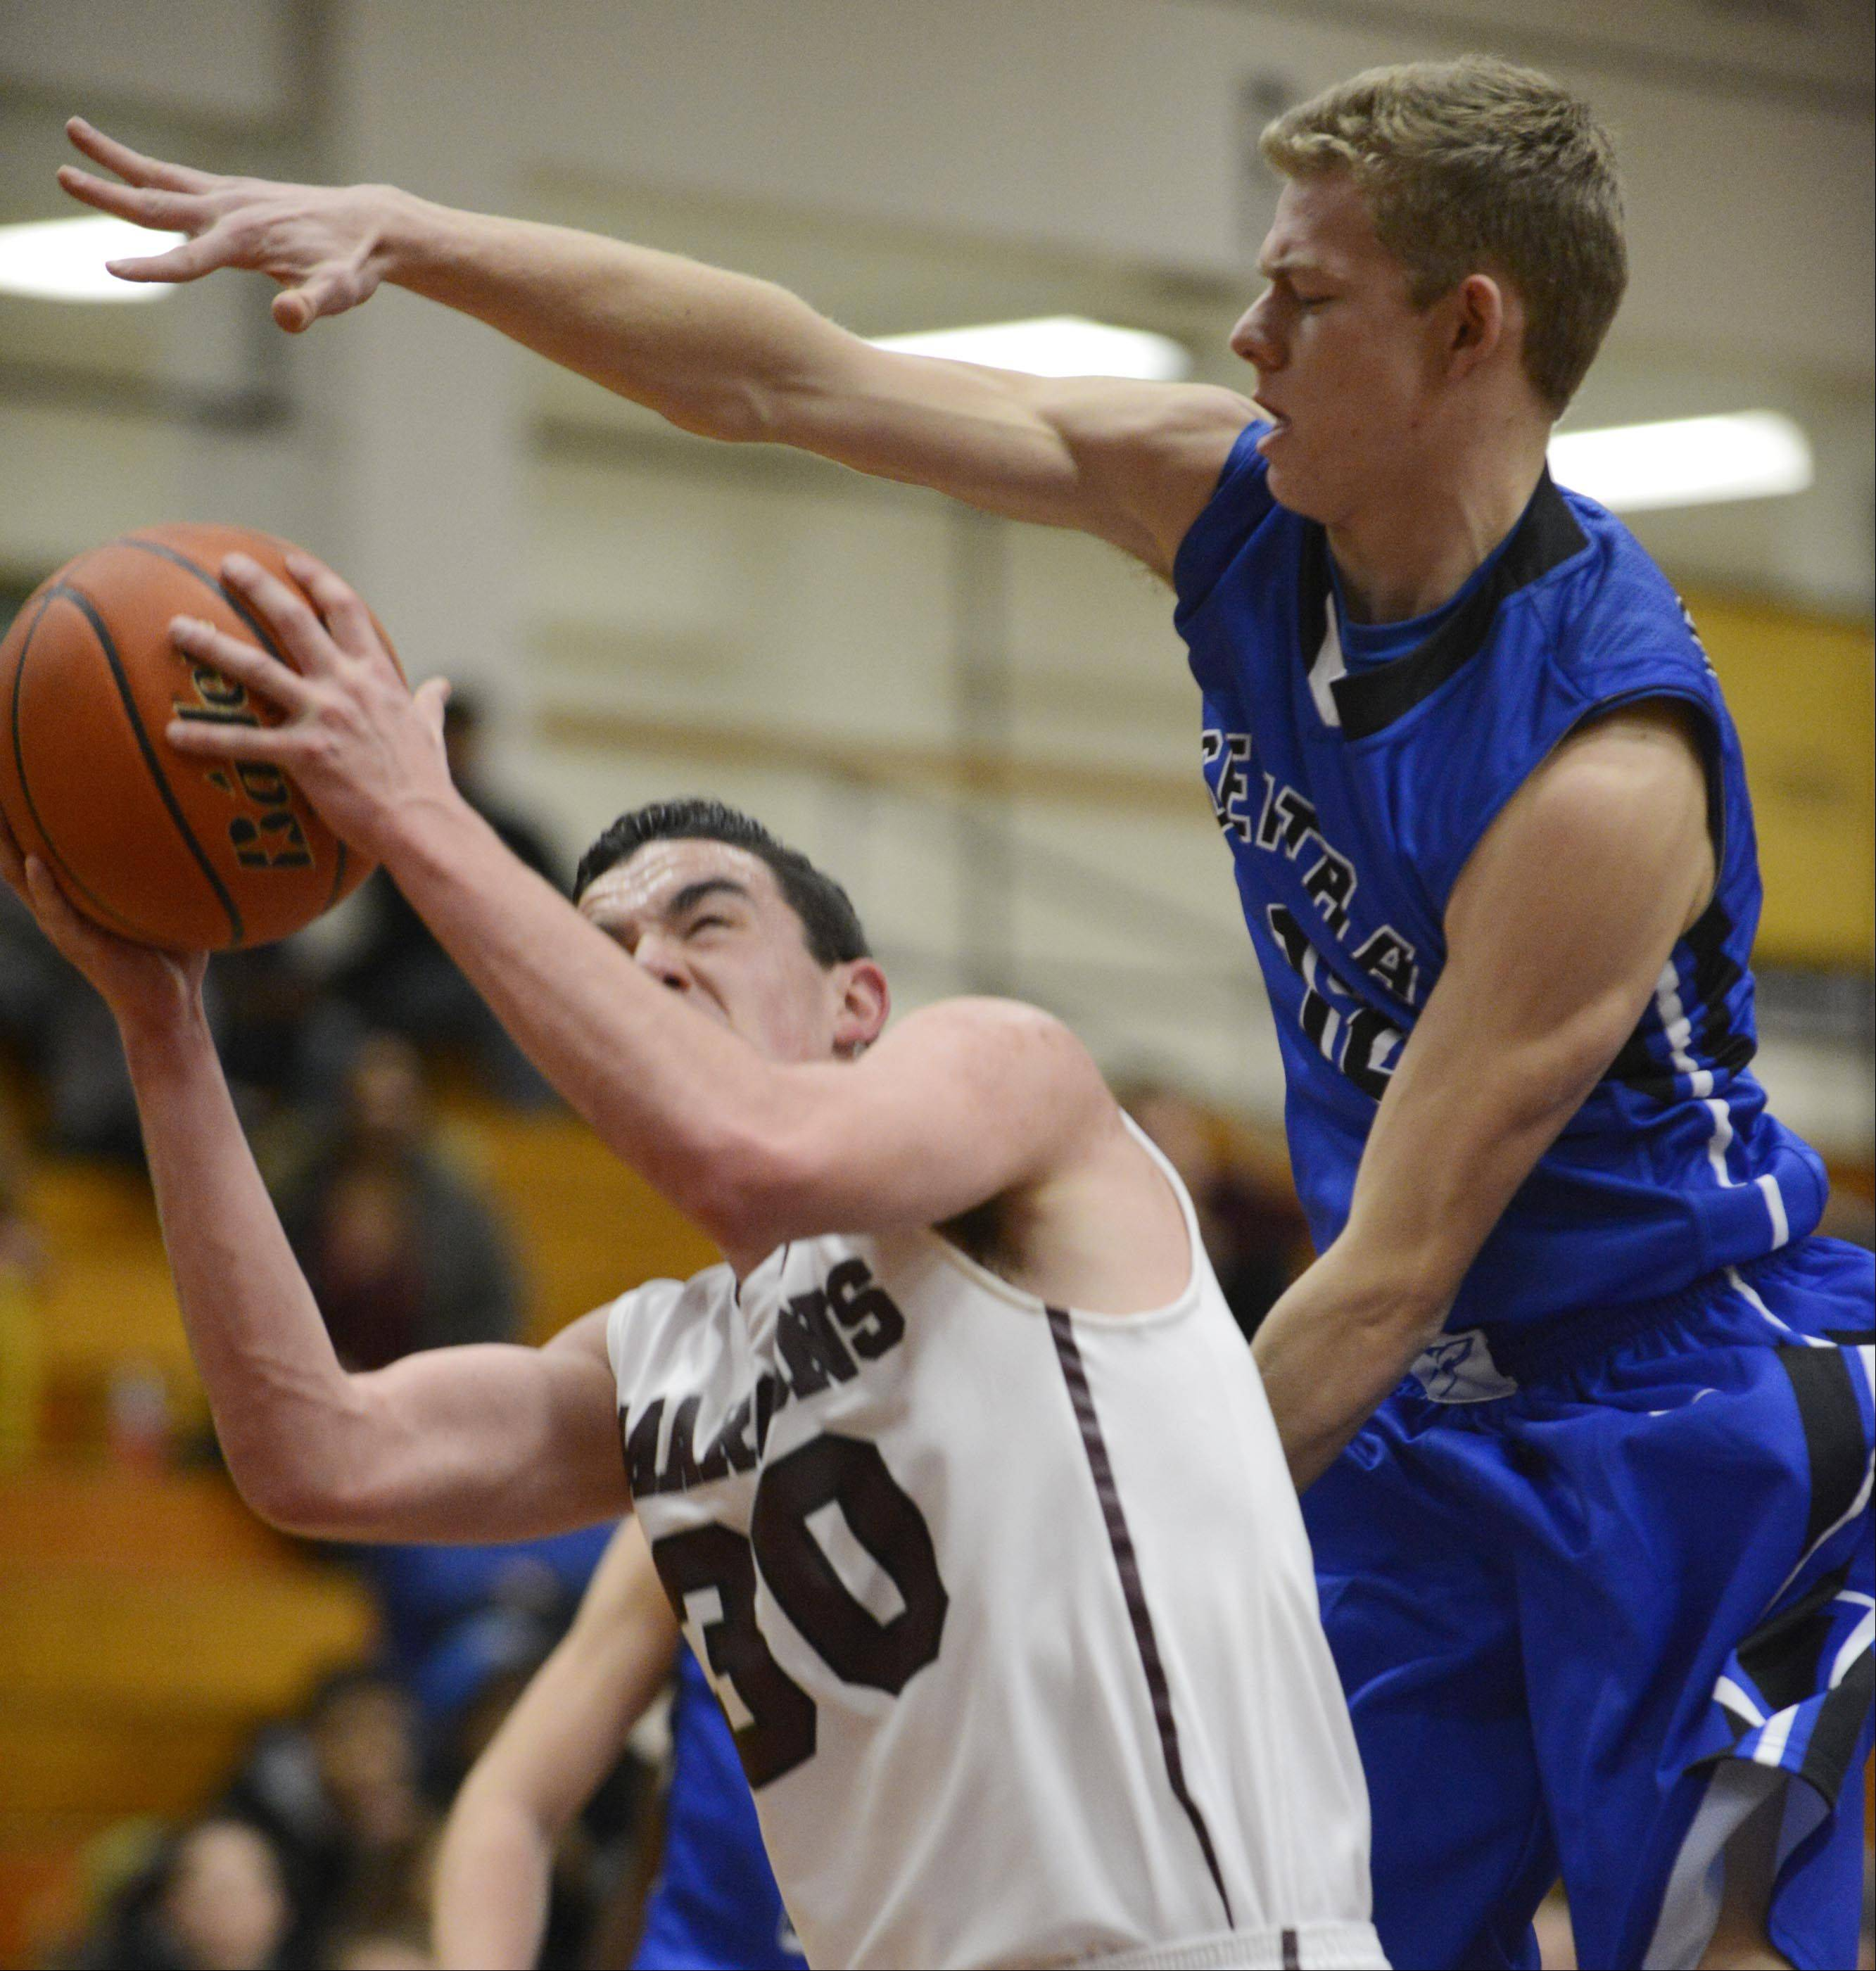 Burlington Central's Stefan Jochum fouls Elgin's Kiko Mari as he tries to block his shot Tuesday in Elgin.